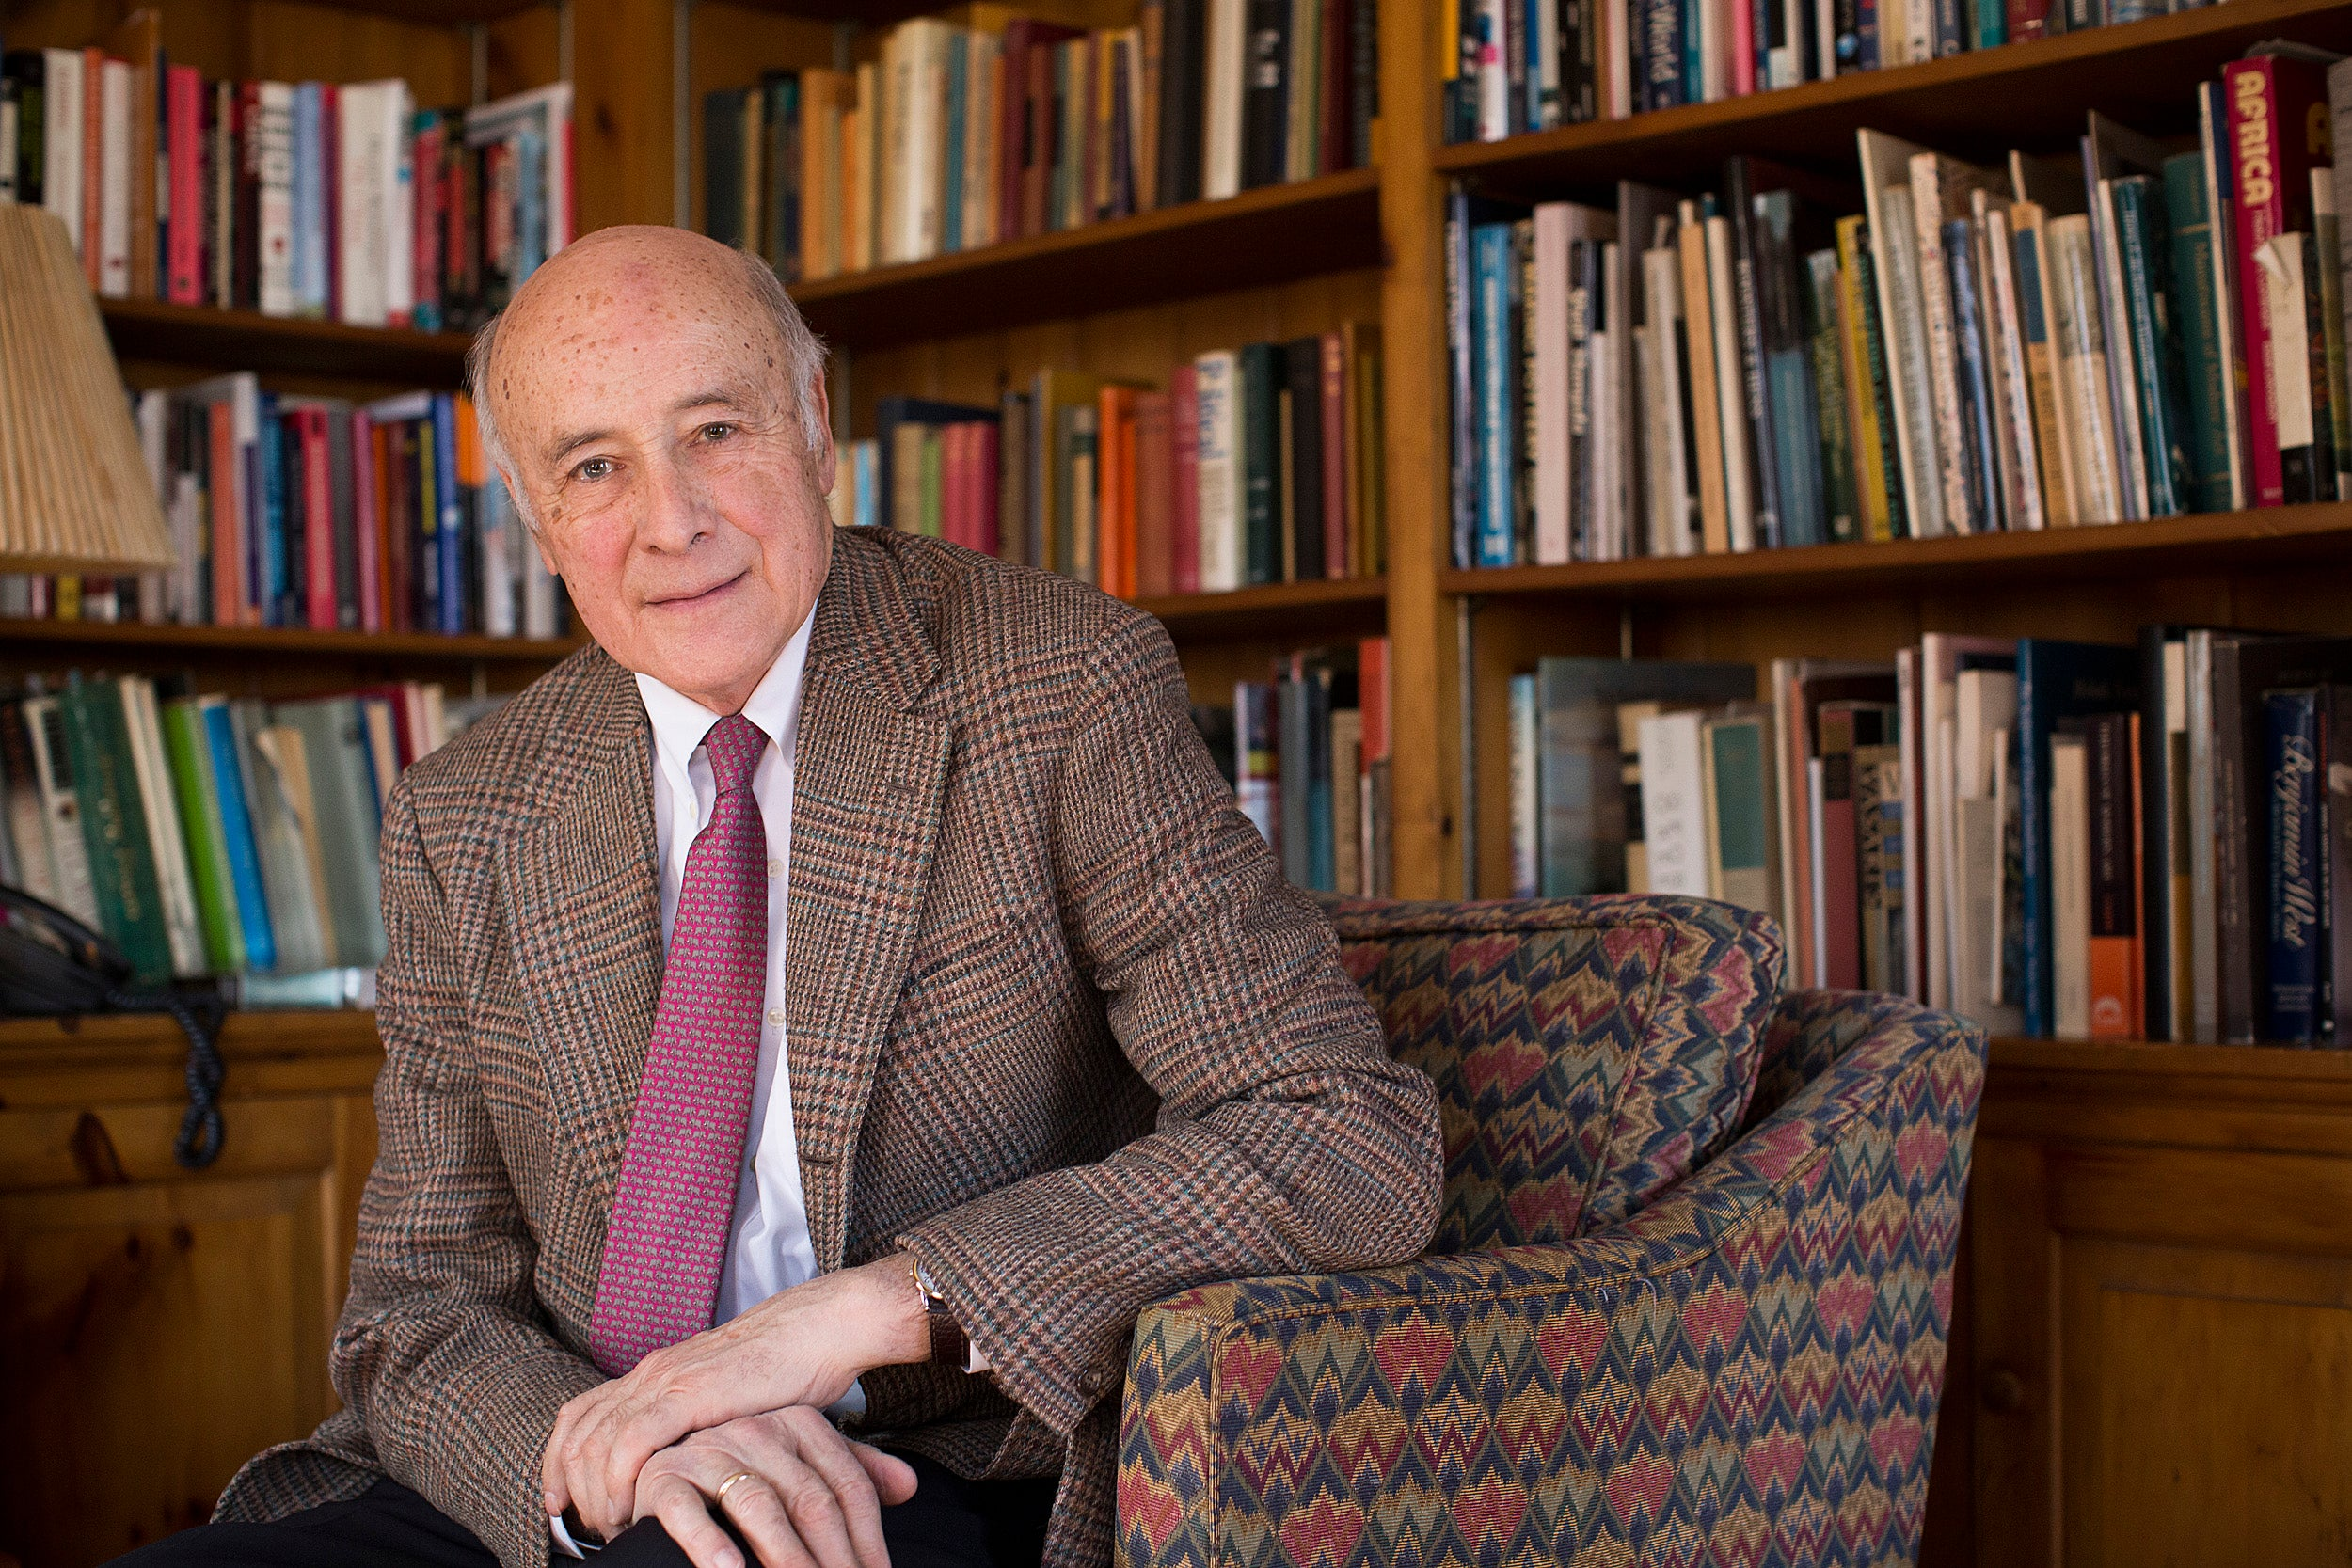 In new book, Nye rates presidents on foreign policy ethics